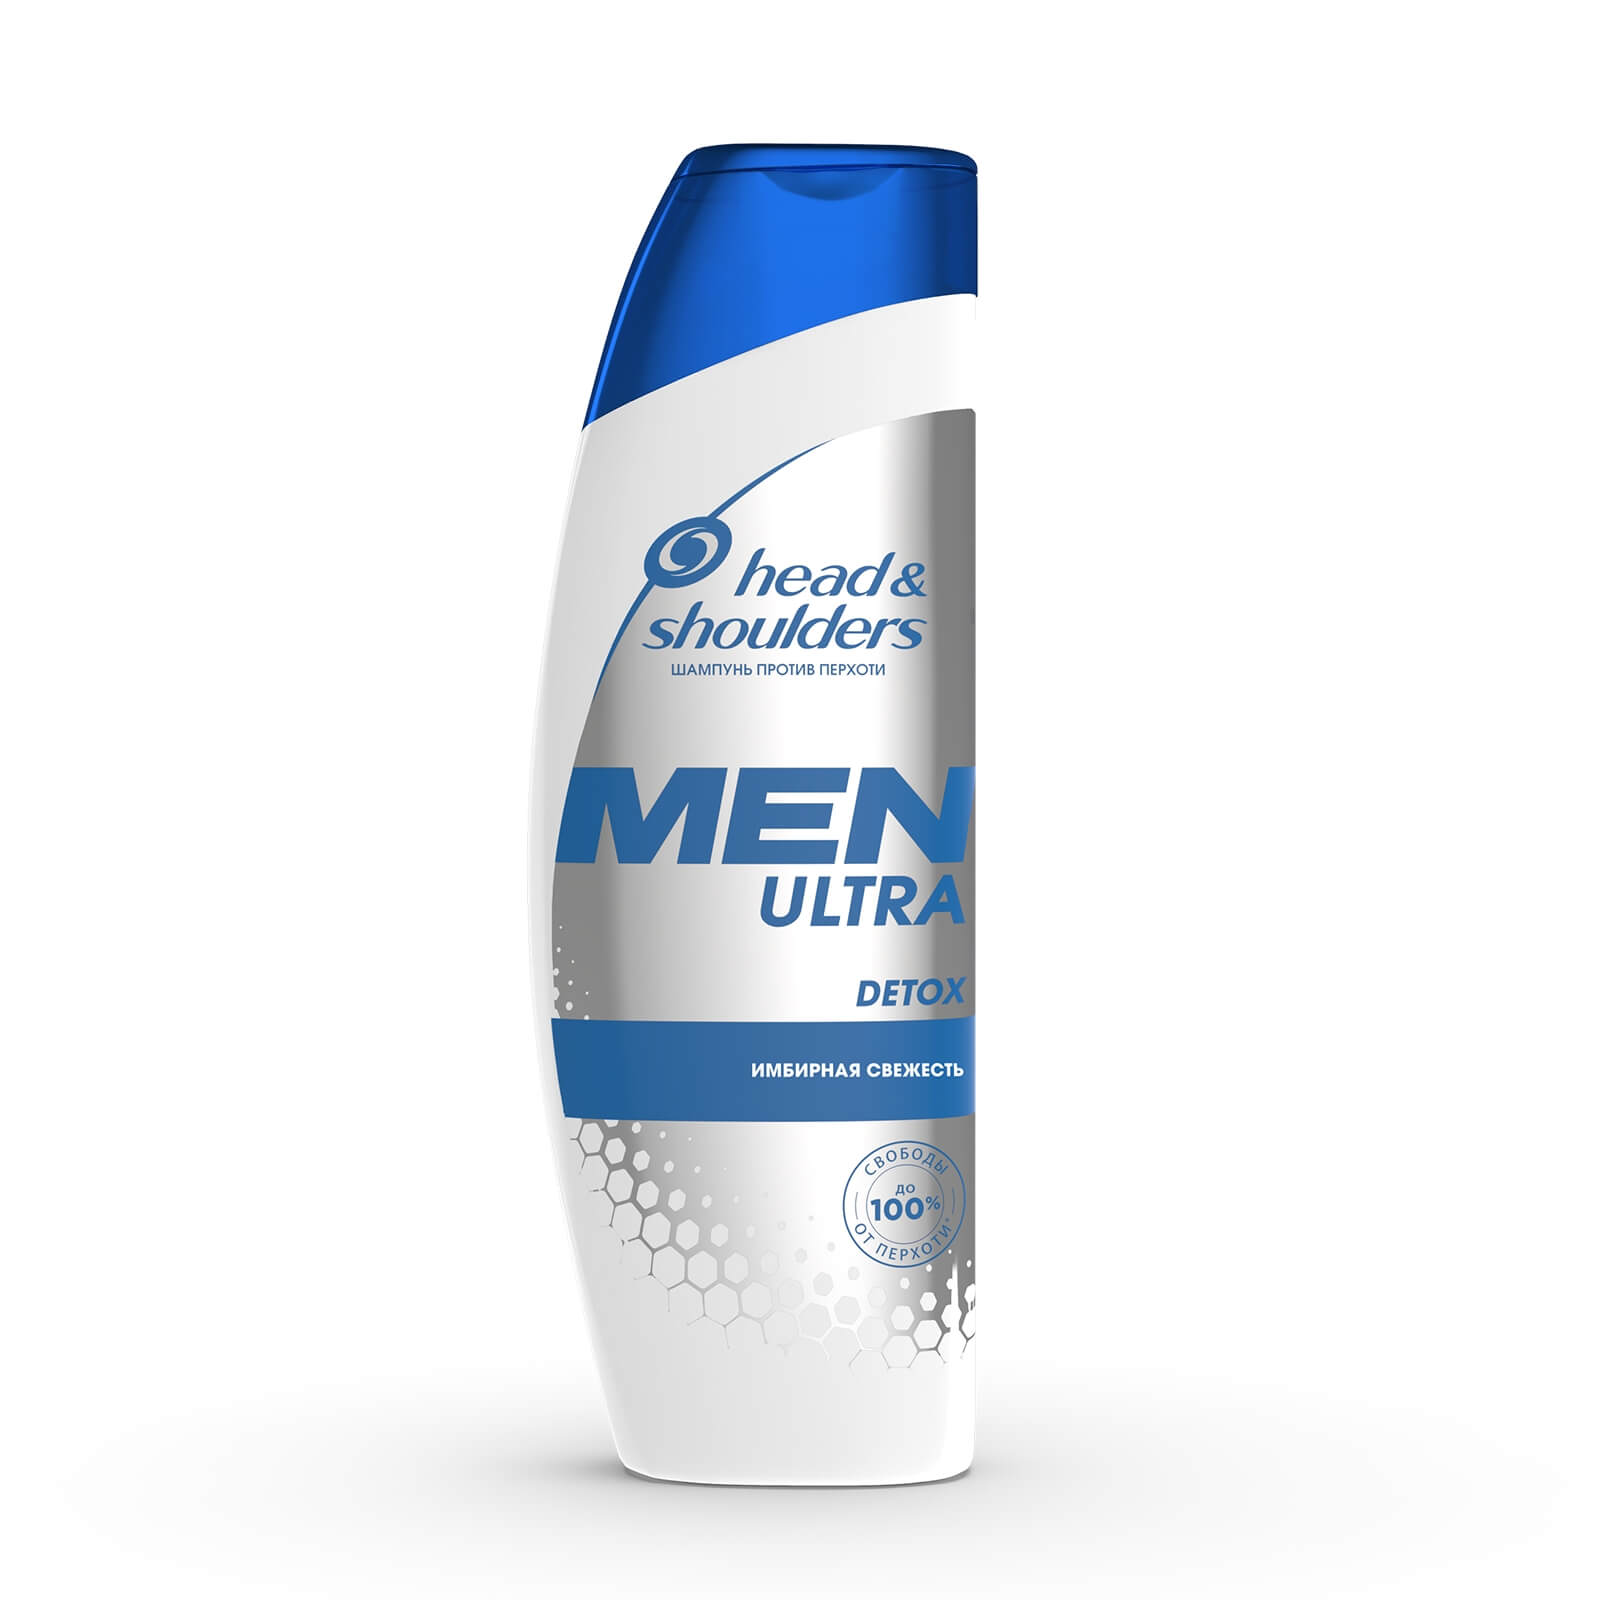 Men Ultra Detox